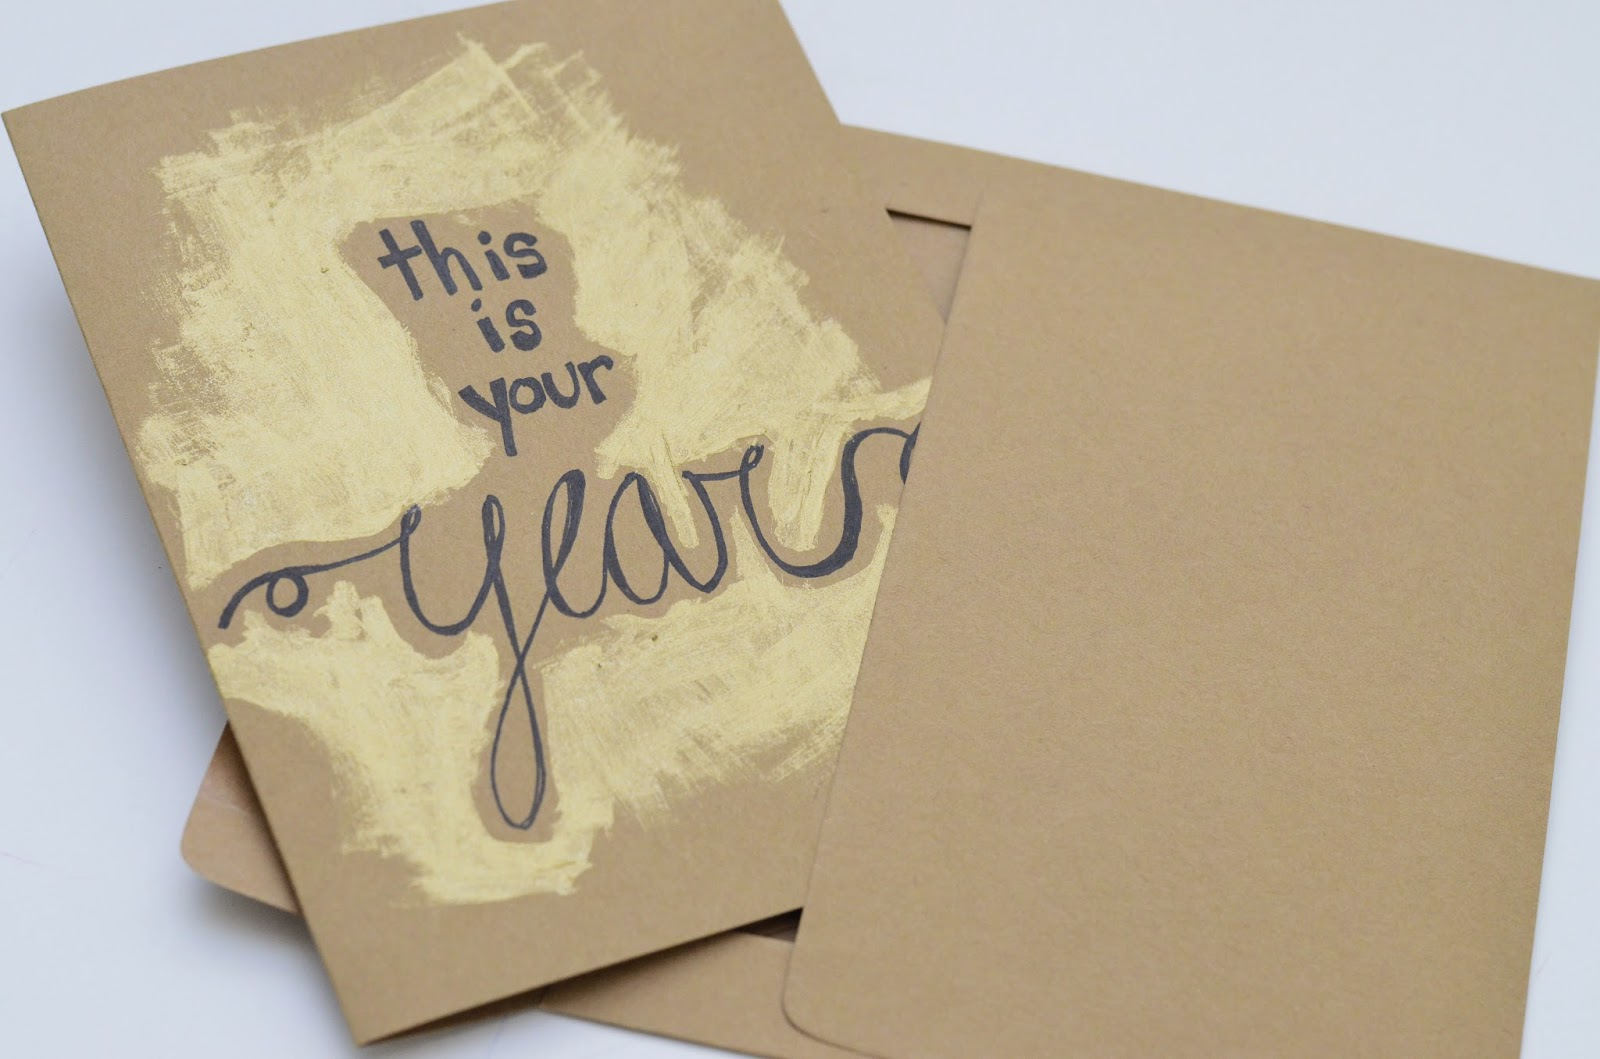 https://www.etsy.com/listing/217063104/this-is-your-year-encouragement-card-new?ref=shop_home_active_14